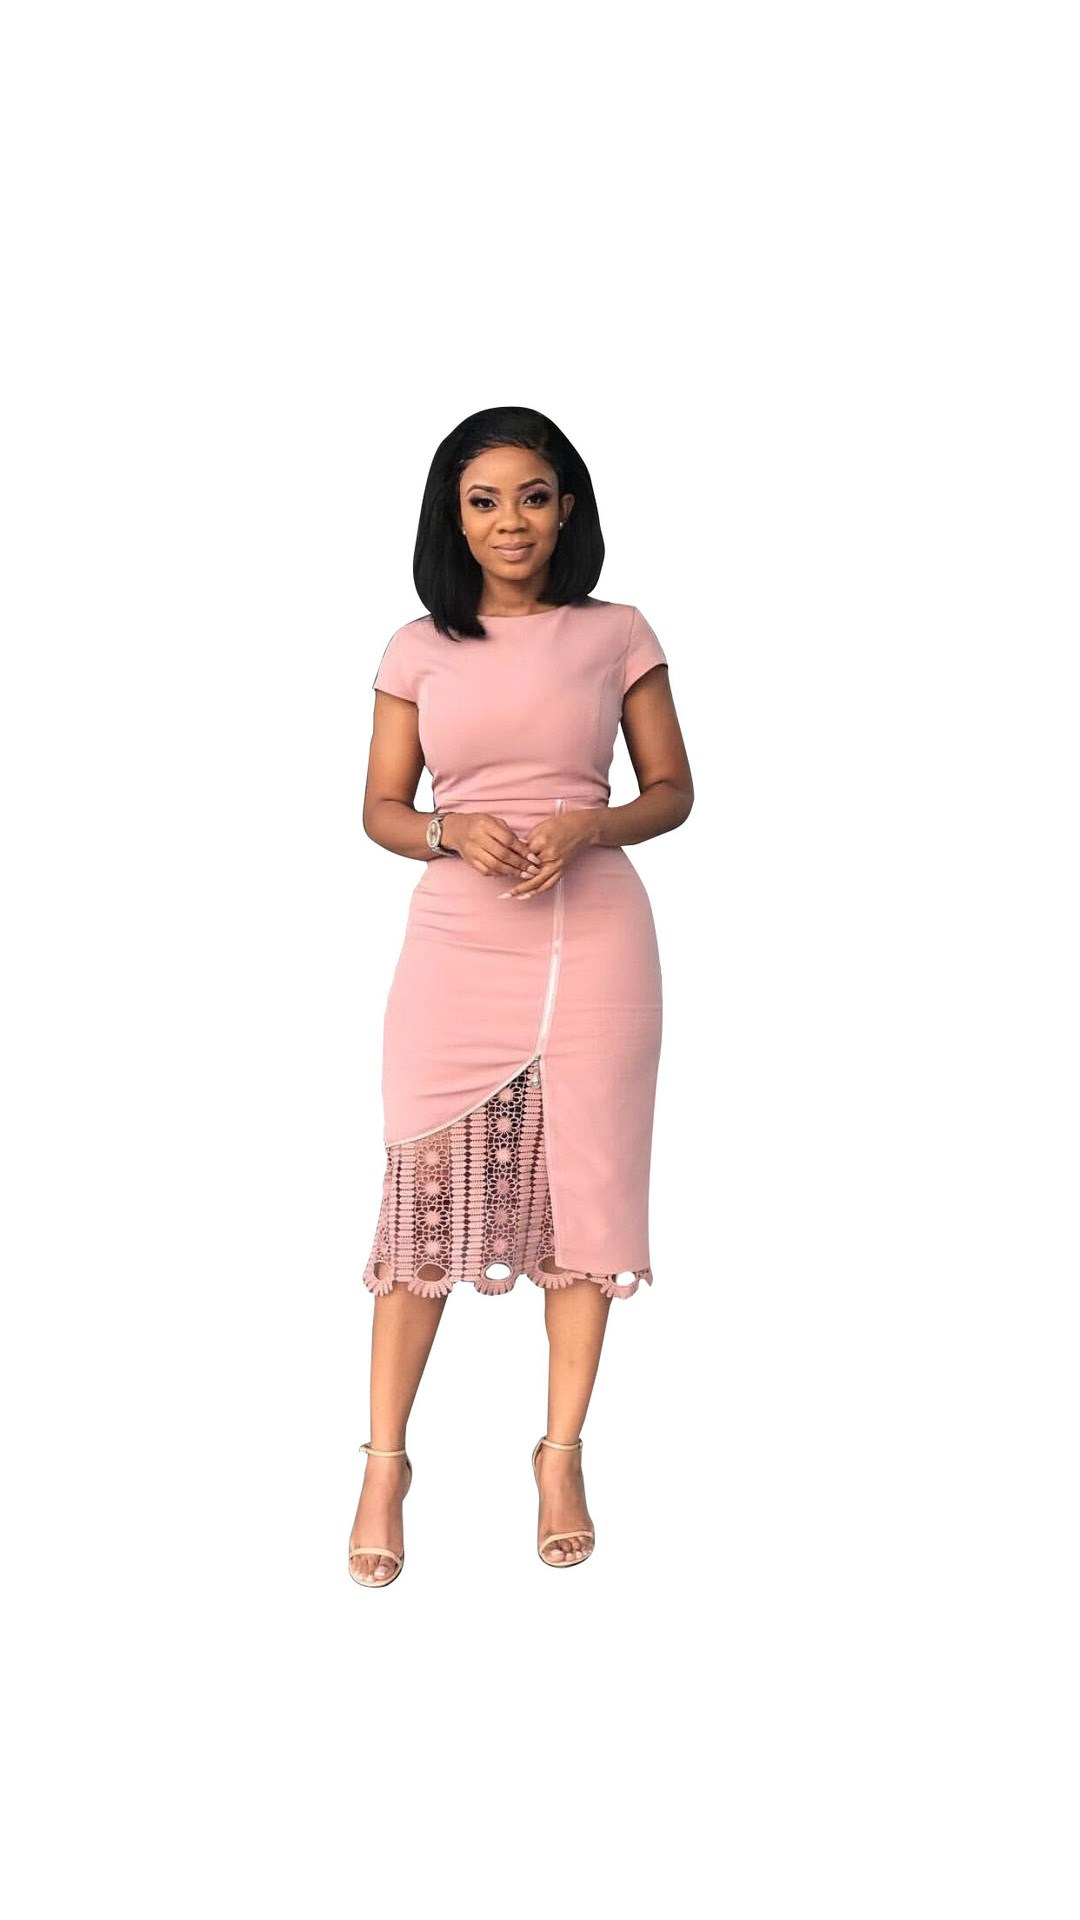 Elegant Boutonniere Lace Pink Midi Dress Women Casual Office O Neck Pencil Dress Solid Party Short Sleeve Bodycon Dress in Dresses from Women 39 s Clothing